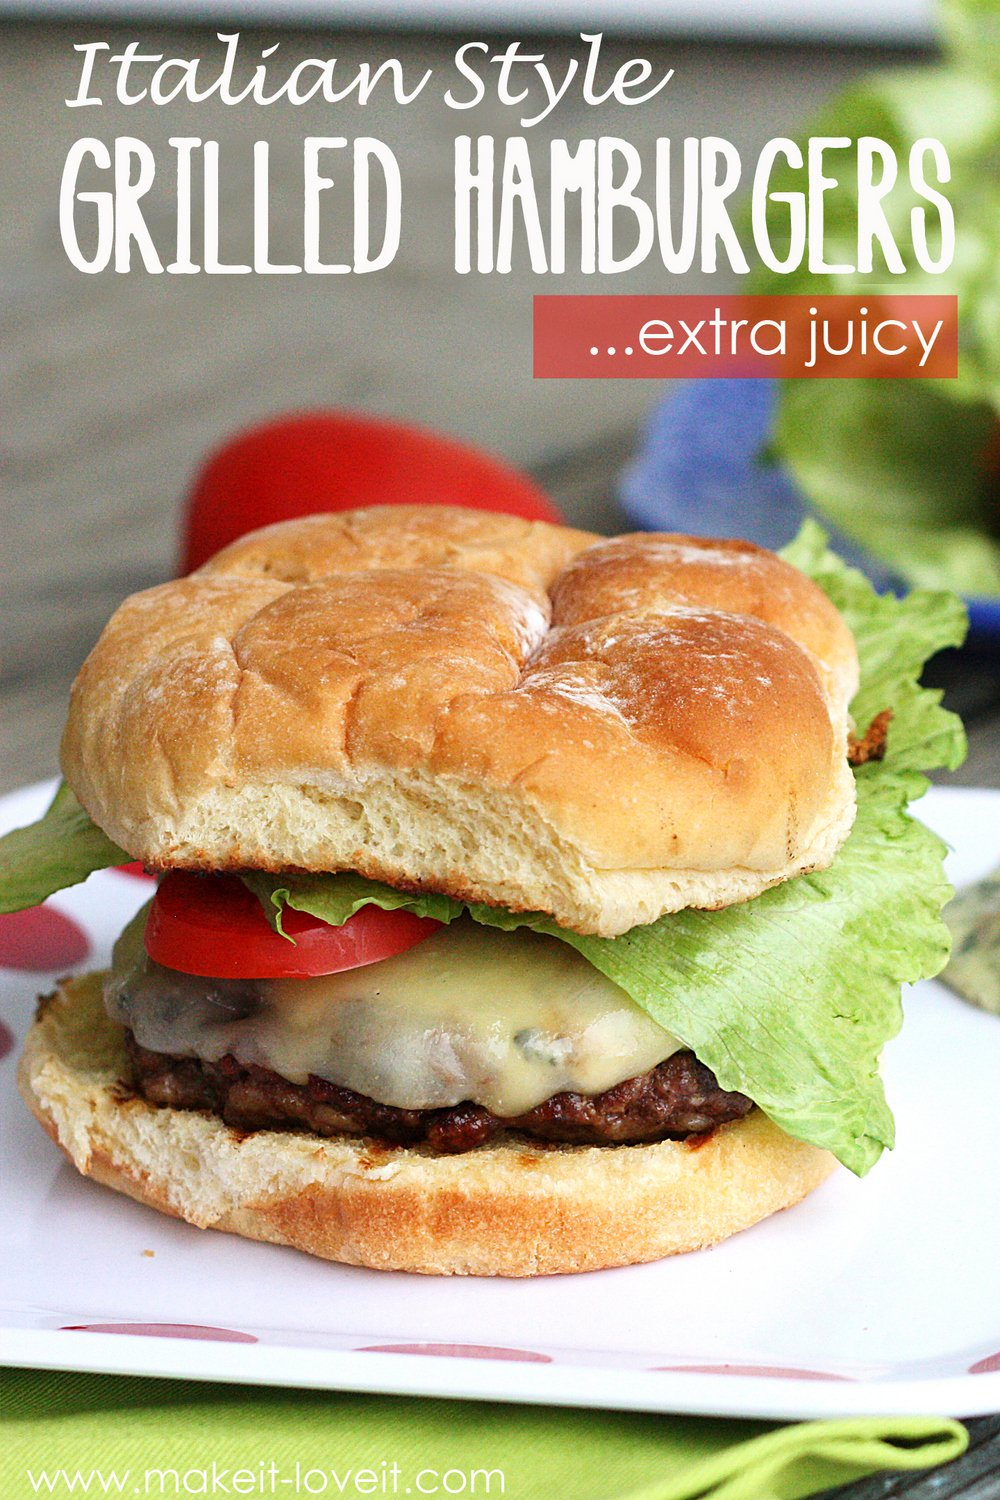 Italian Style GRILLED HAMBURGERS...extra juicy --- Make It and Love It (in the KITCHEN)